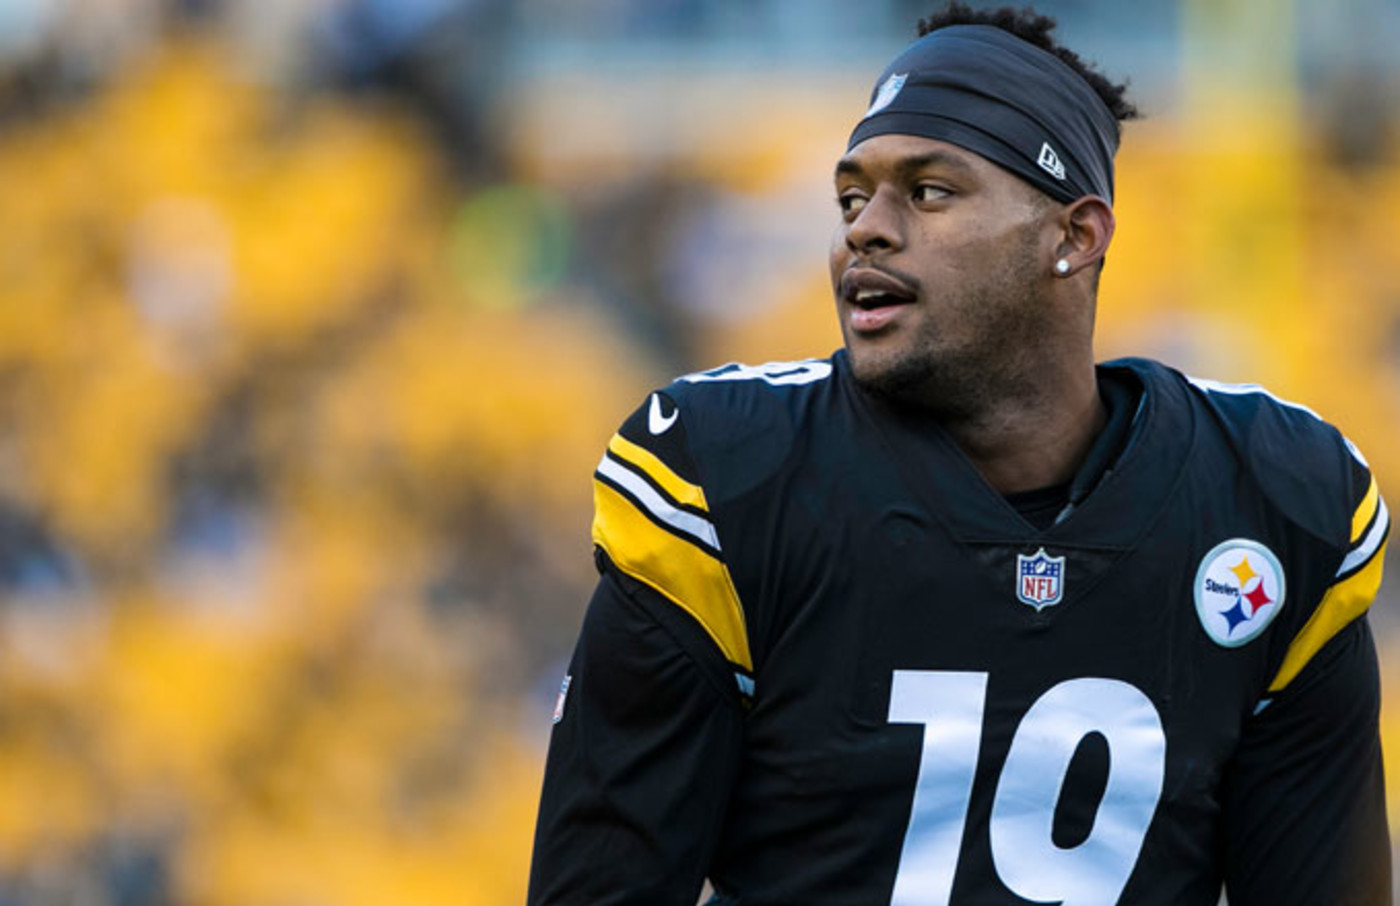 Steelers wide receiver Juju Smith-Schuster